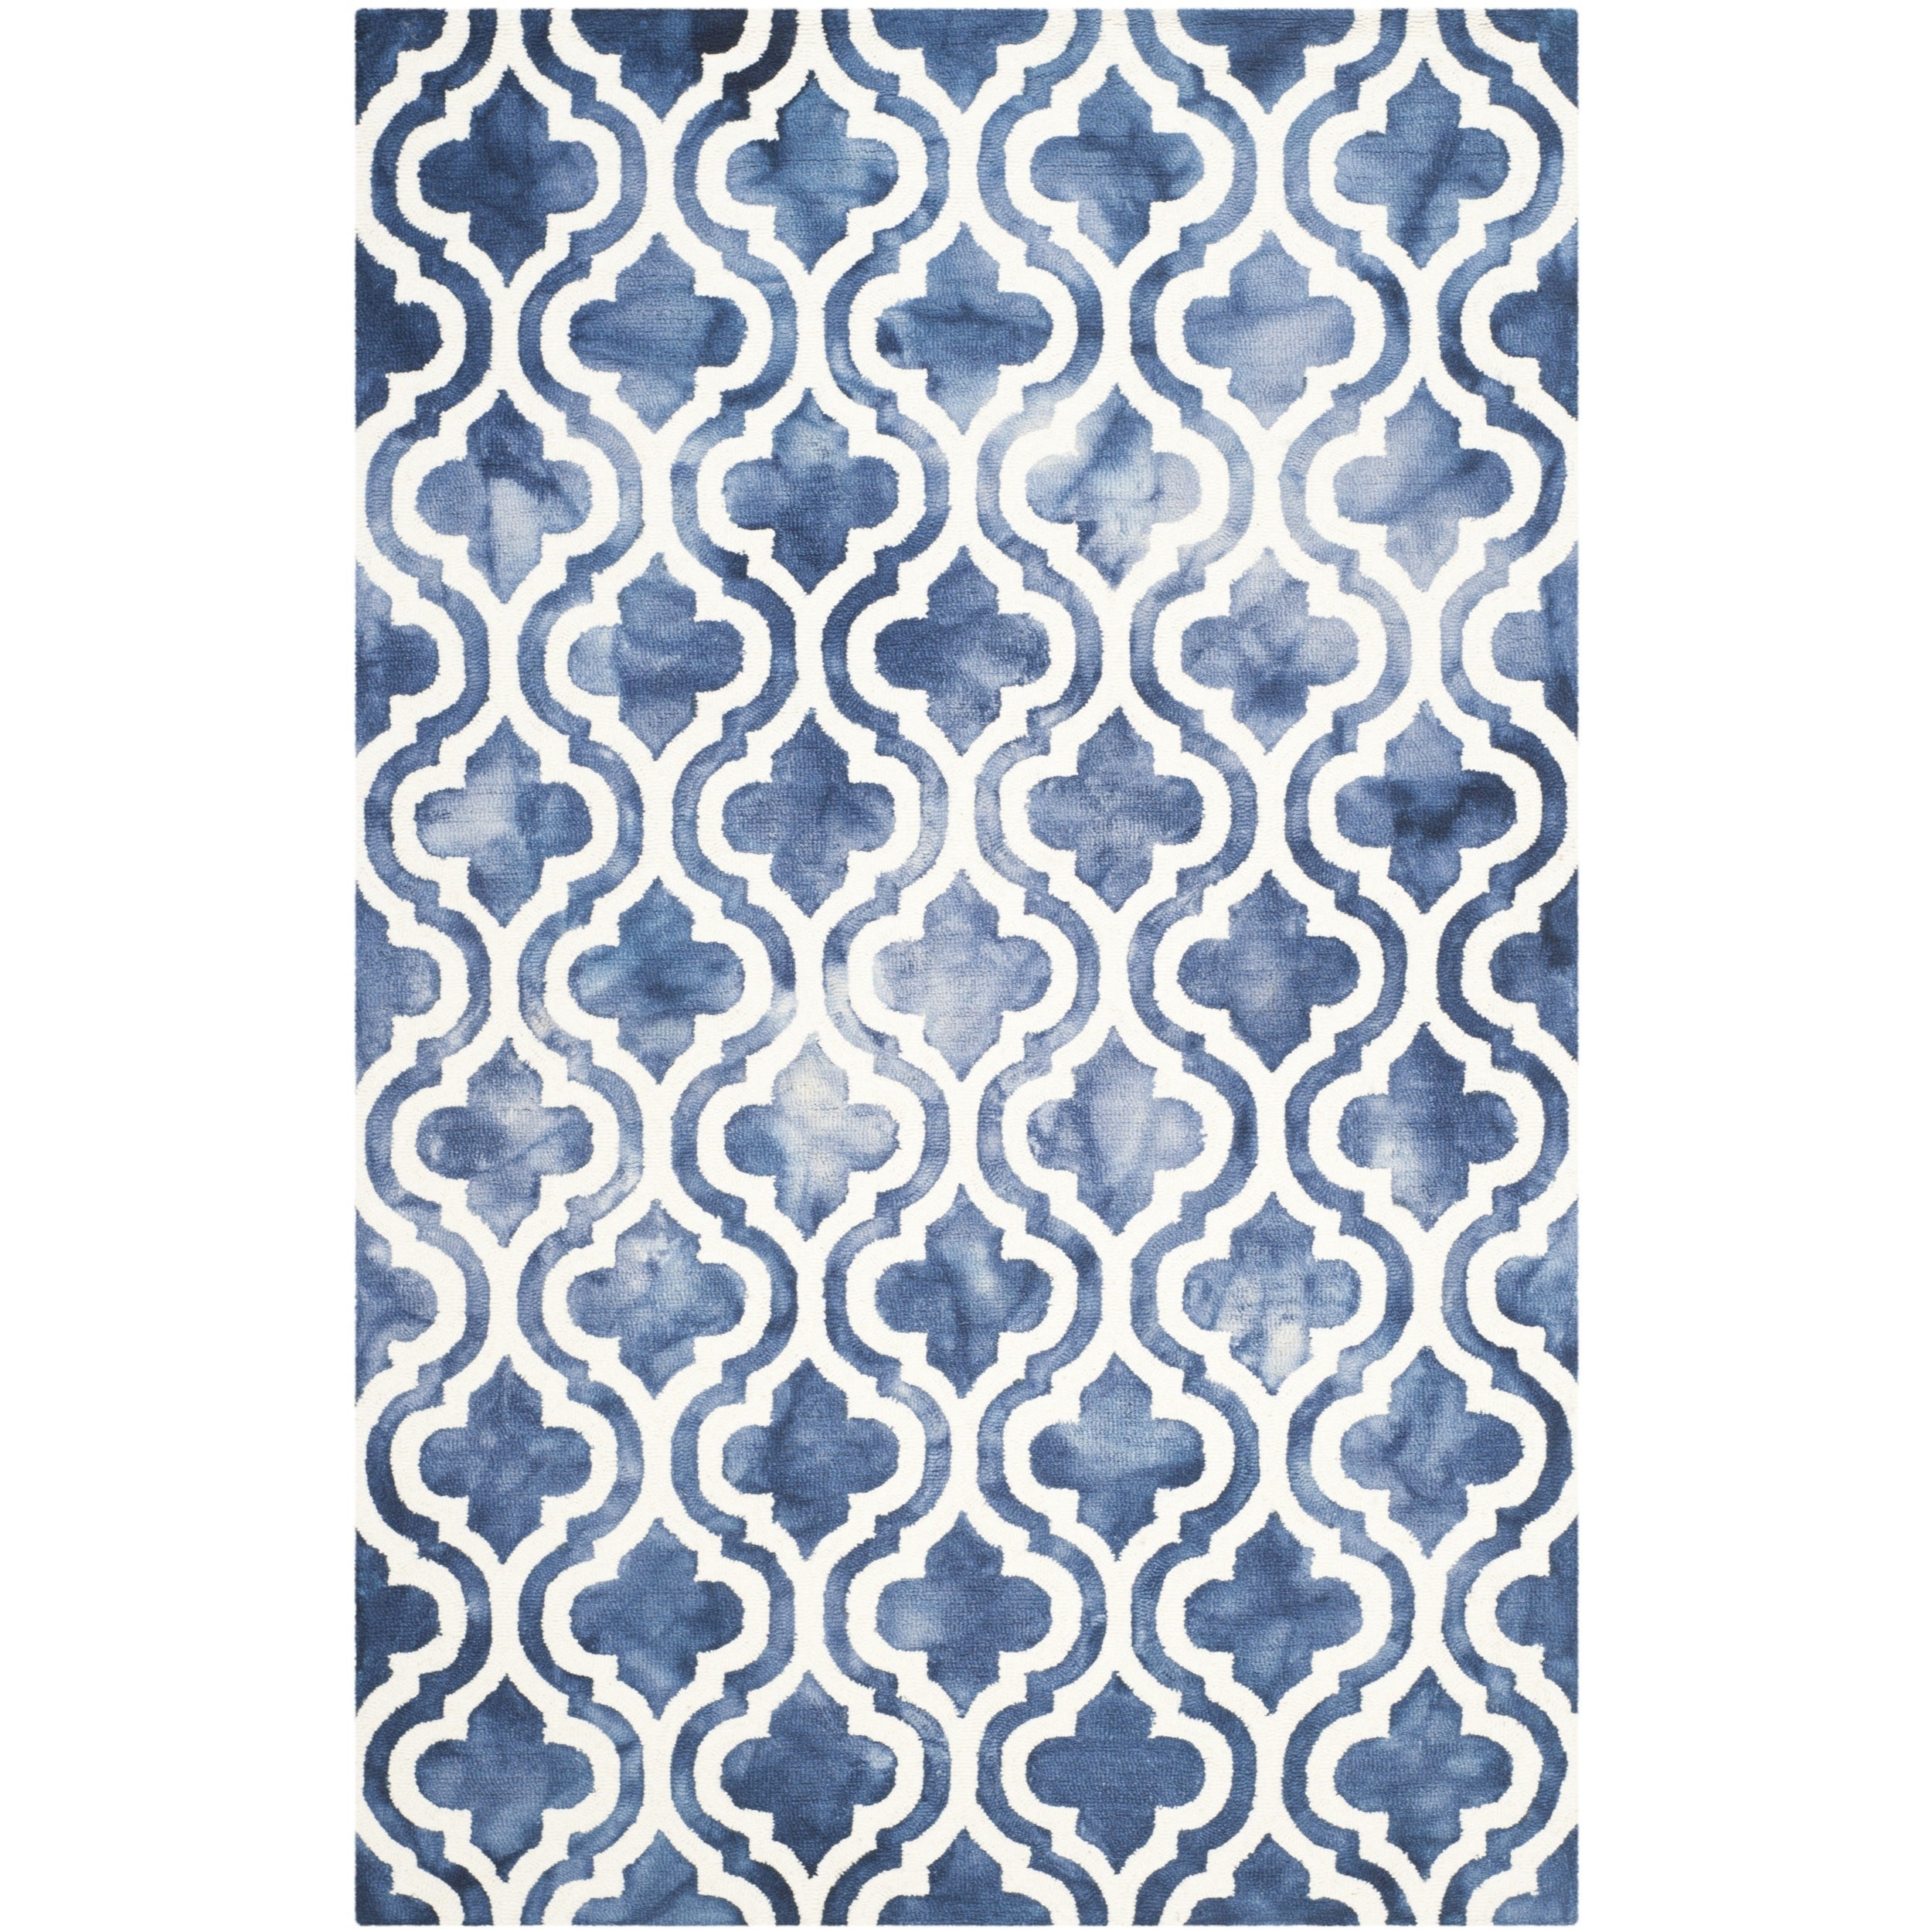 Gray And White Rugs 5x8 Area Rug Ideas